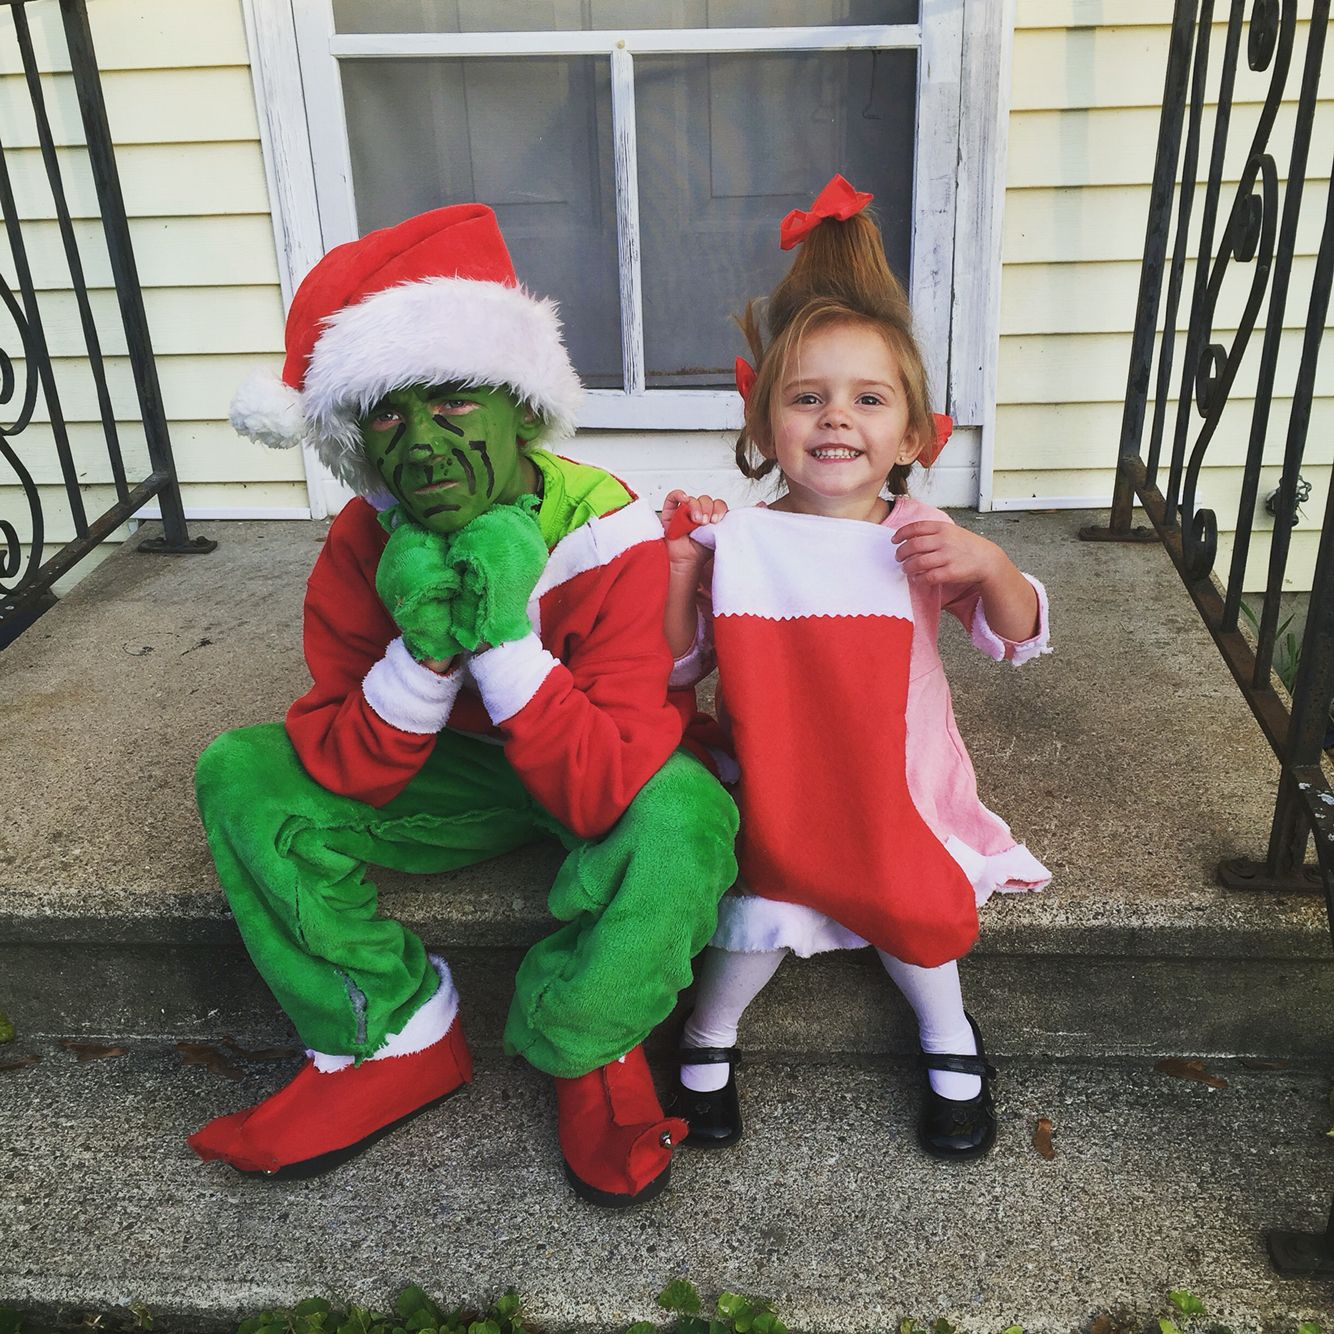 DIY grinch and Cindy Lou Who Halloween costumes!! Even a stocking as a candy bag... We shouldu0027ve won some kind of award!!! #DIY #halloweencostume #grinch ...  sc 1 st  Pinterest & DIY grinch and Cindy Lou Who Halloween costumes!! Even a stocking as ...